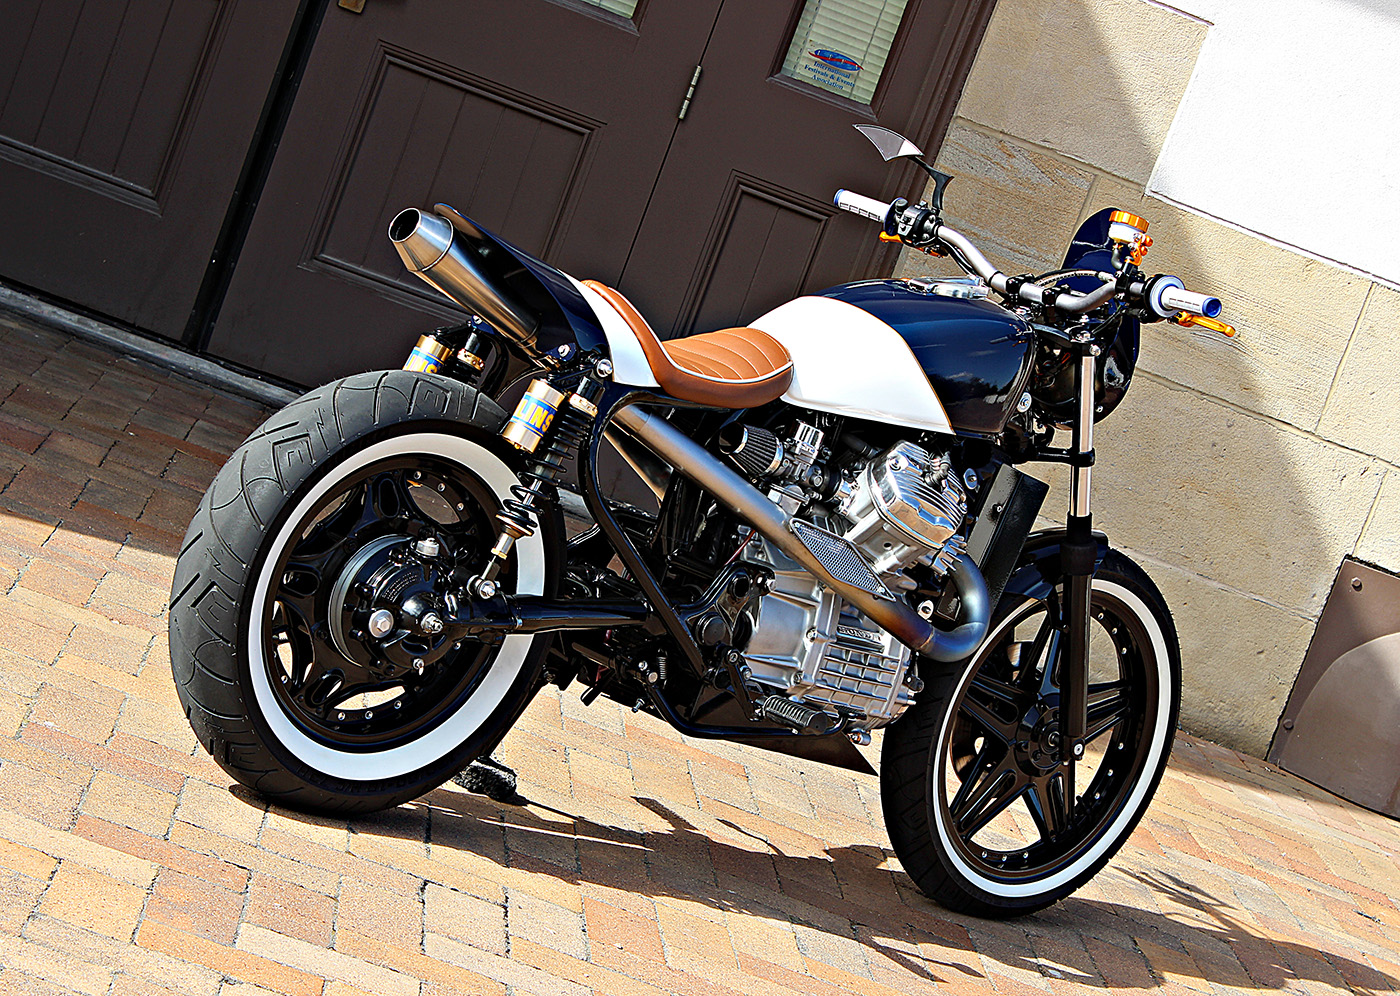 jmr customs builds amazing honda cx500 racer - autoevolution, Wiring diagram